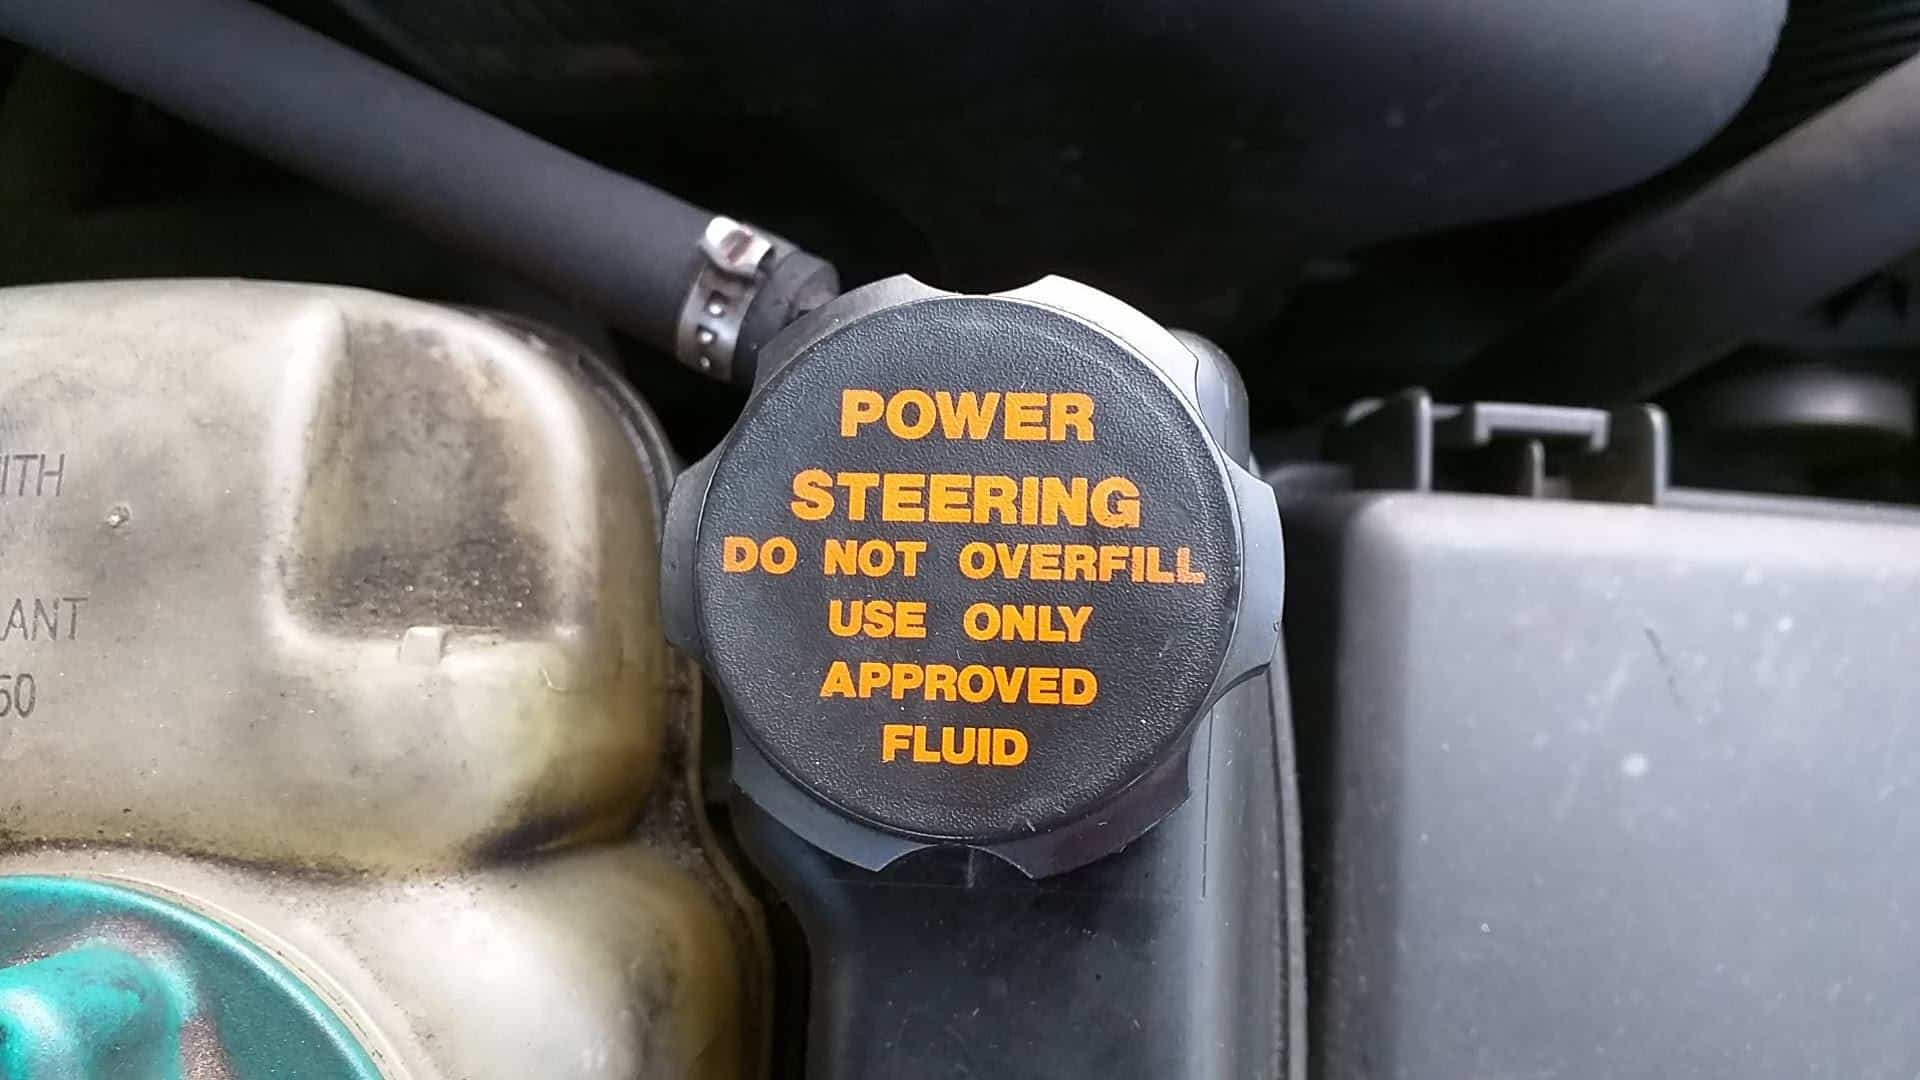 Can I Use Brake Fluid in Power Steering? What Will Happen